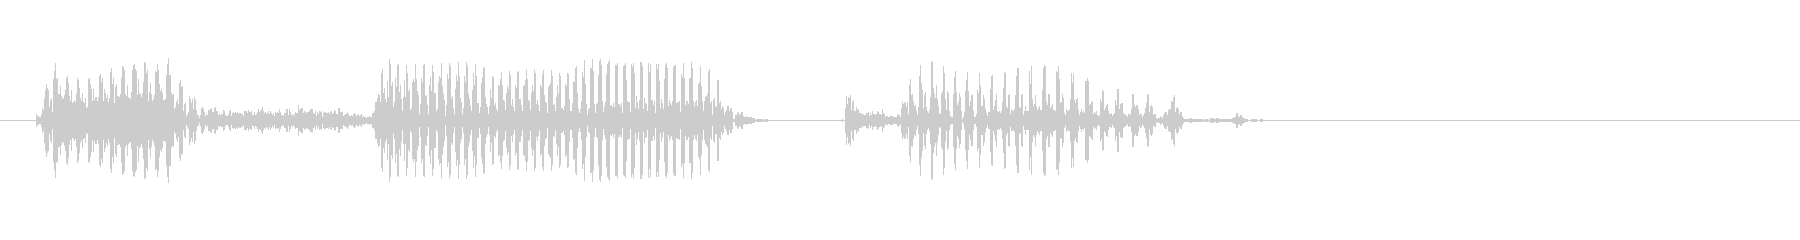 Ehime Prefecture's unreproduced waveform